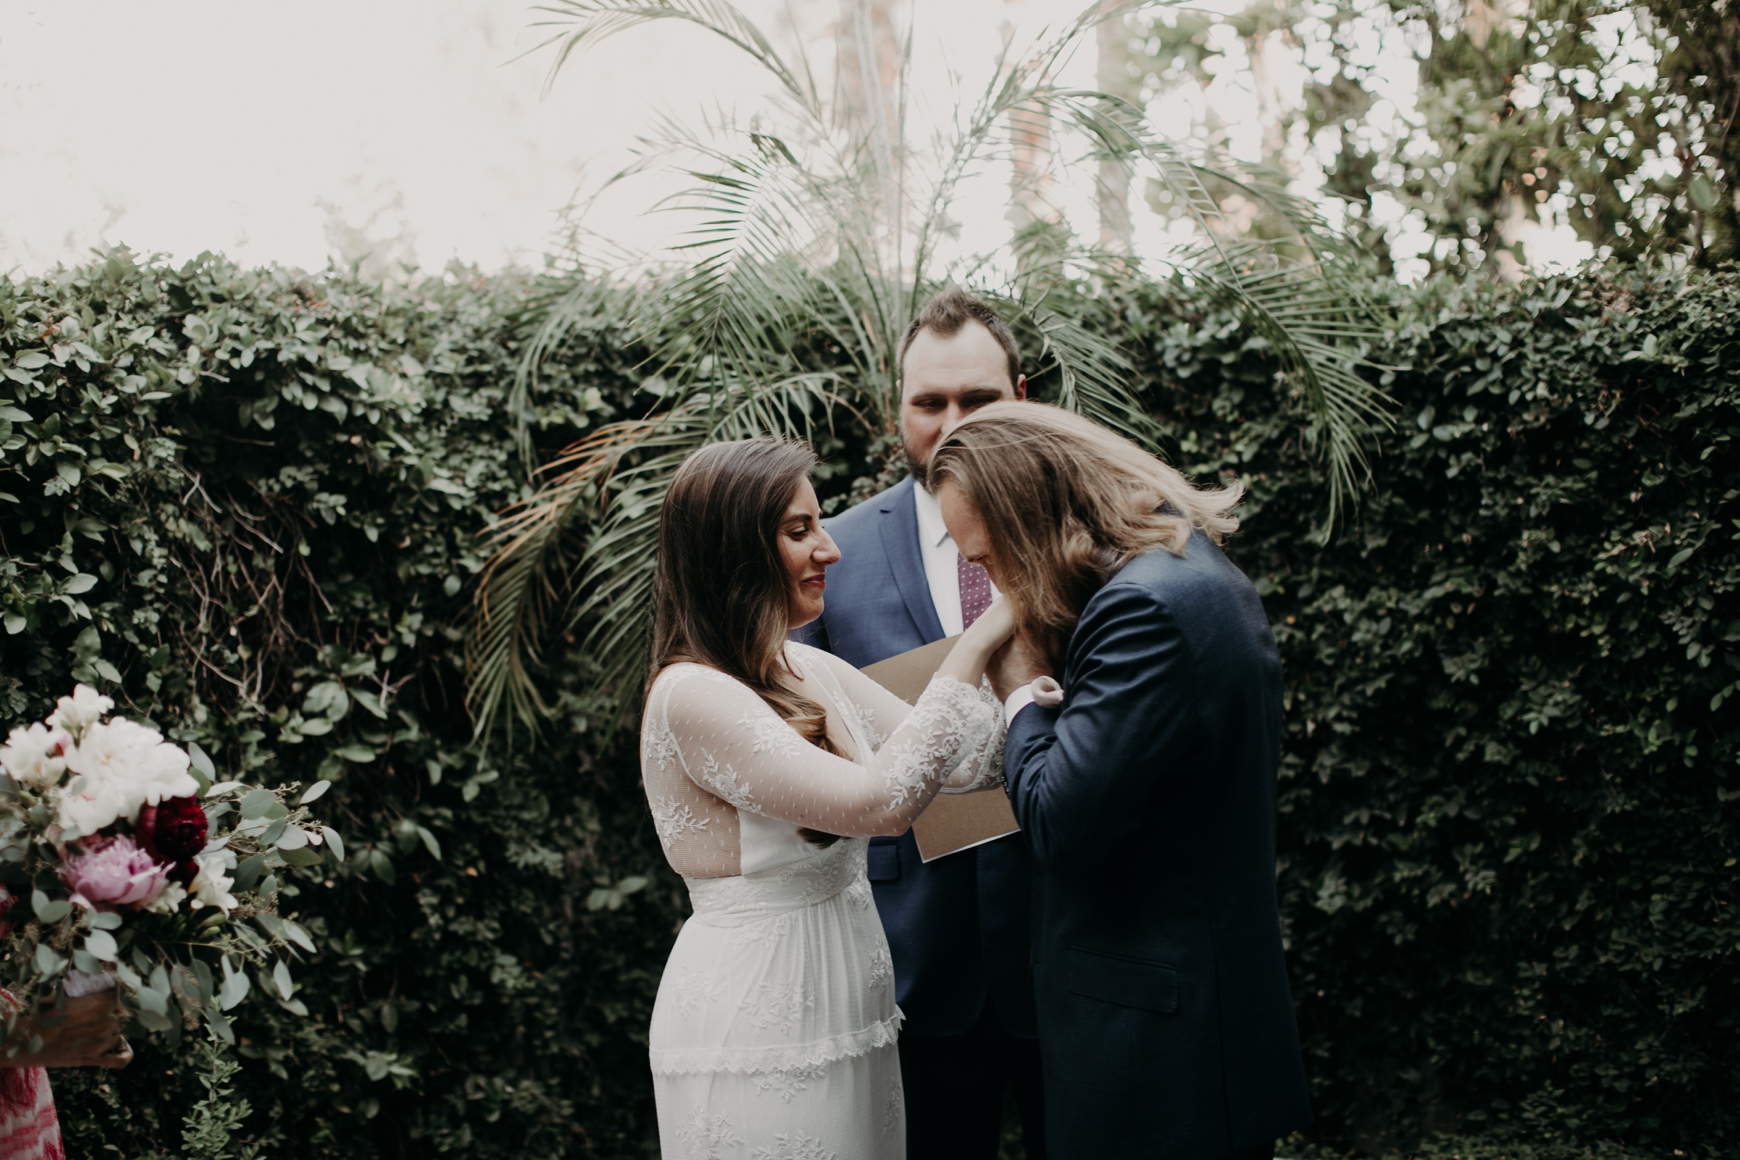 The Colony Palms Hotel Palm Springs Wedding Jaclyn & Tyson Emily Magers Photography-224.jpg